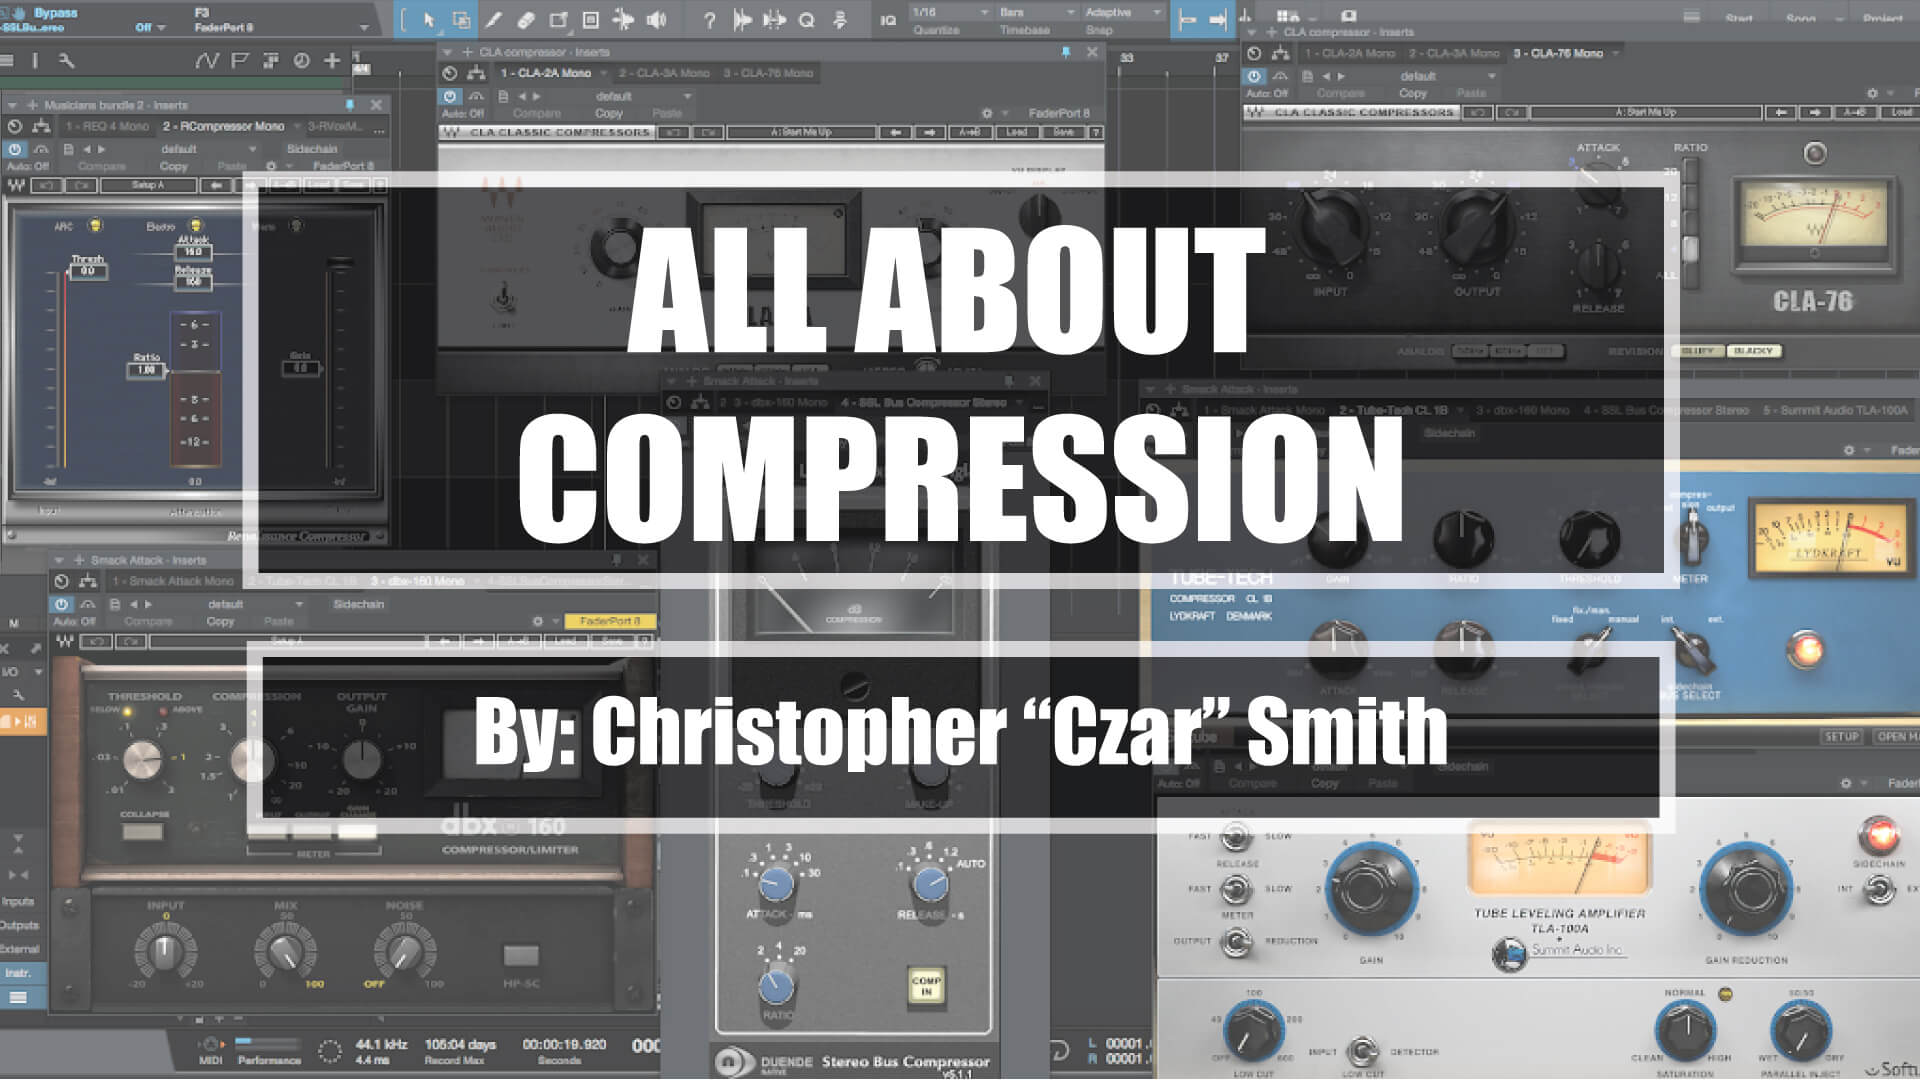 All About Compression